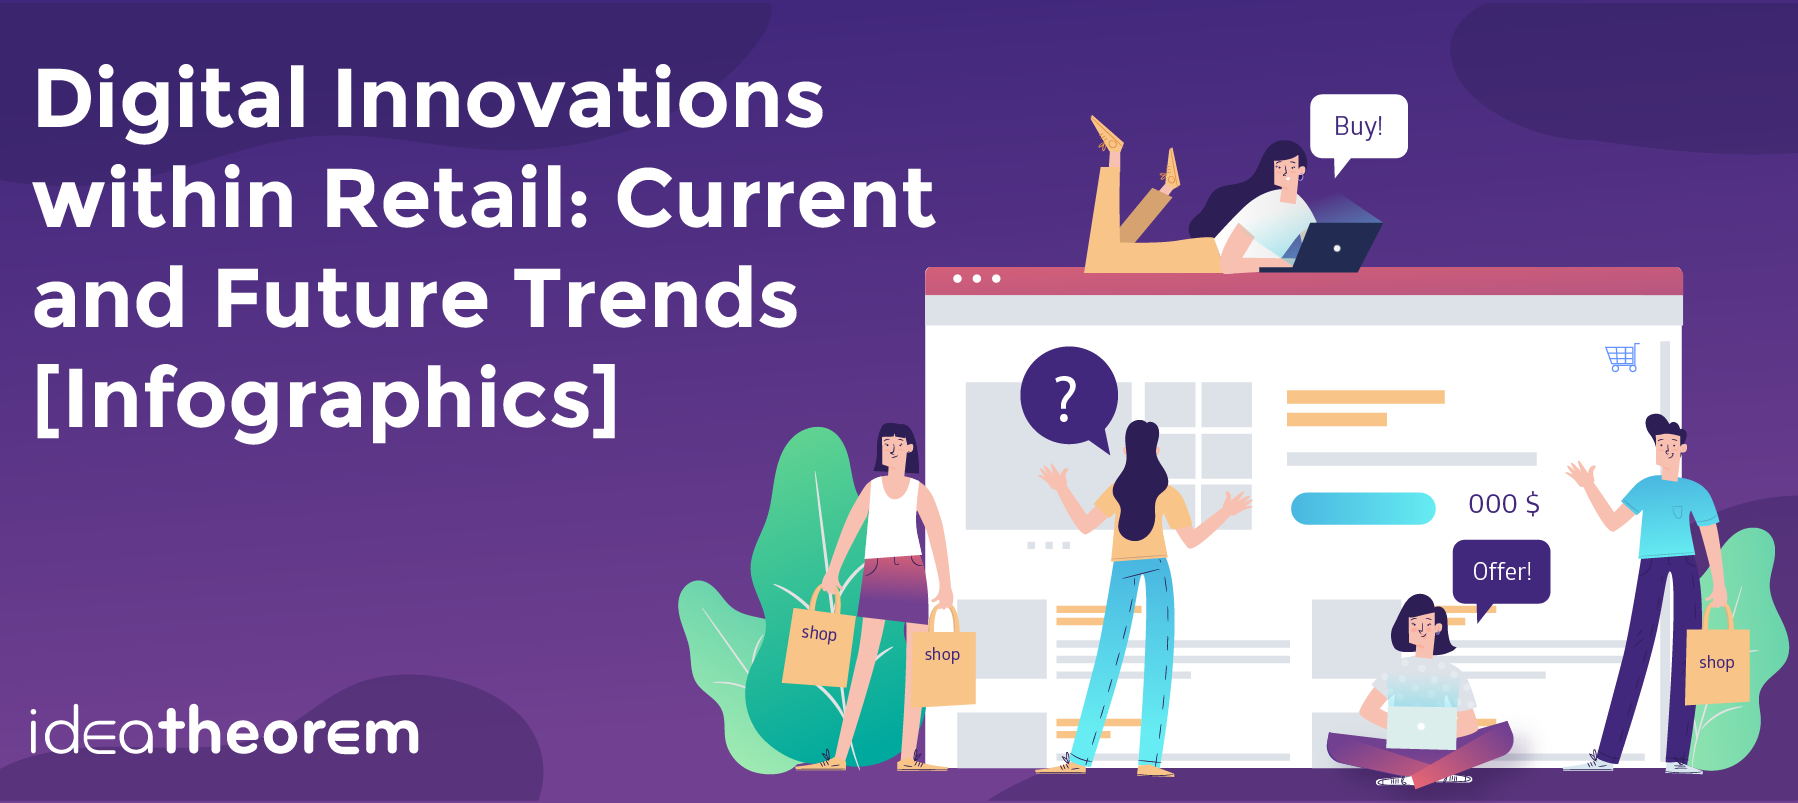 844c255a81eb2 Digital Innovations within Retail: Current and Future Trends [Infographic]